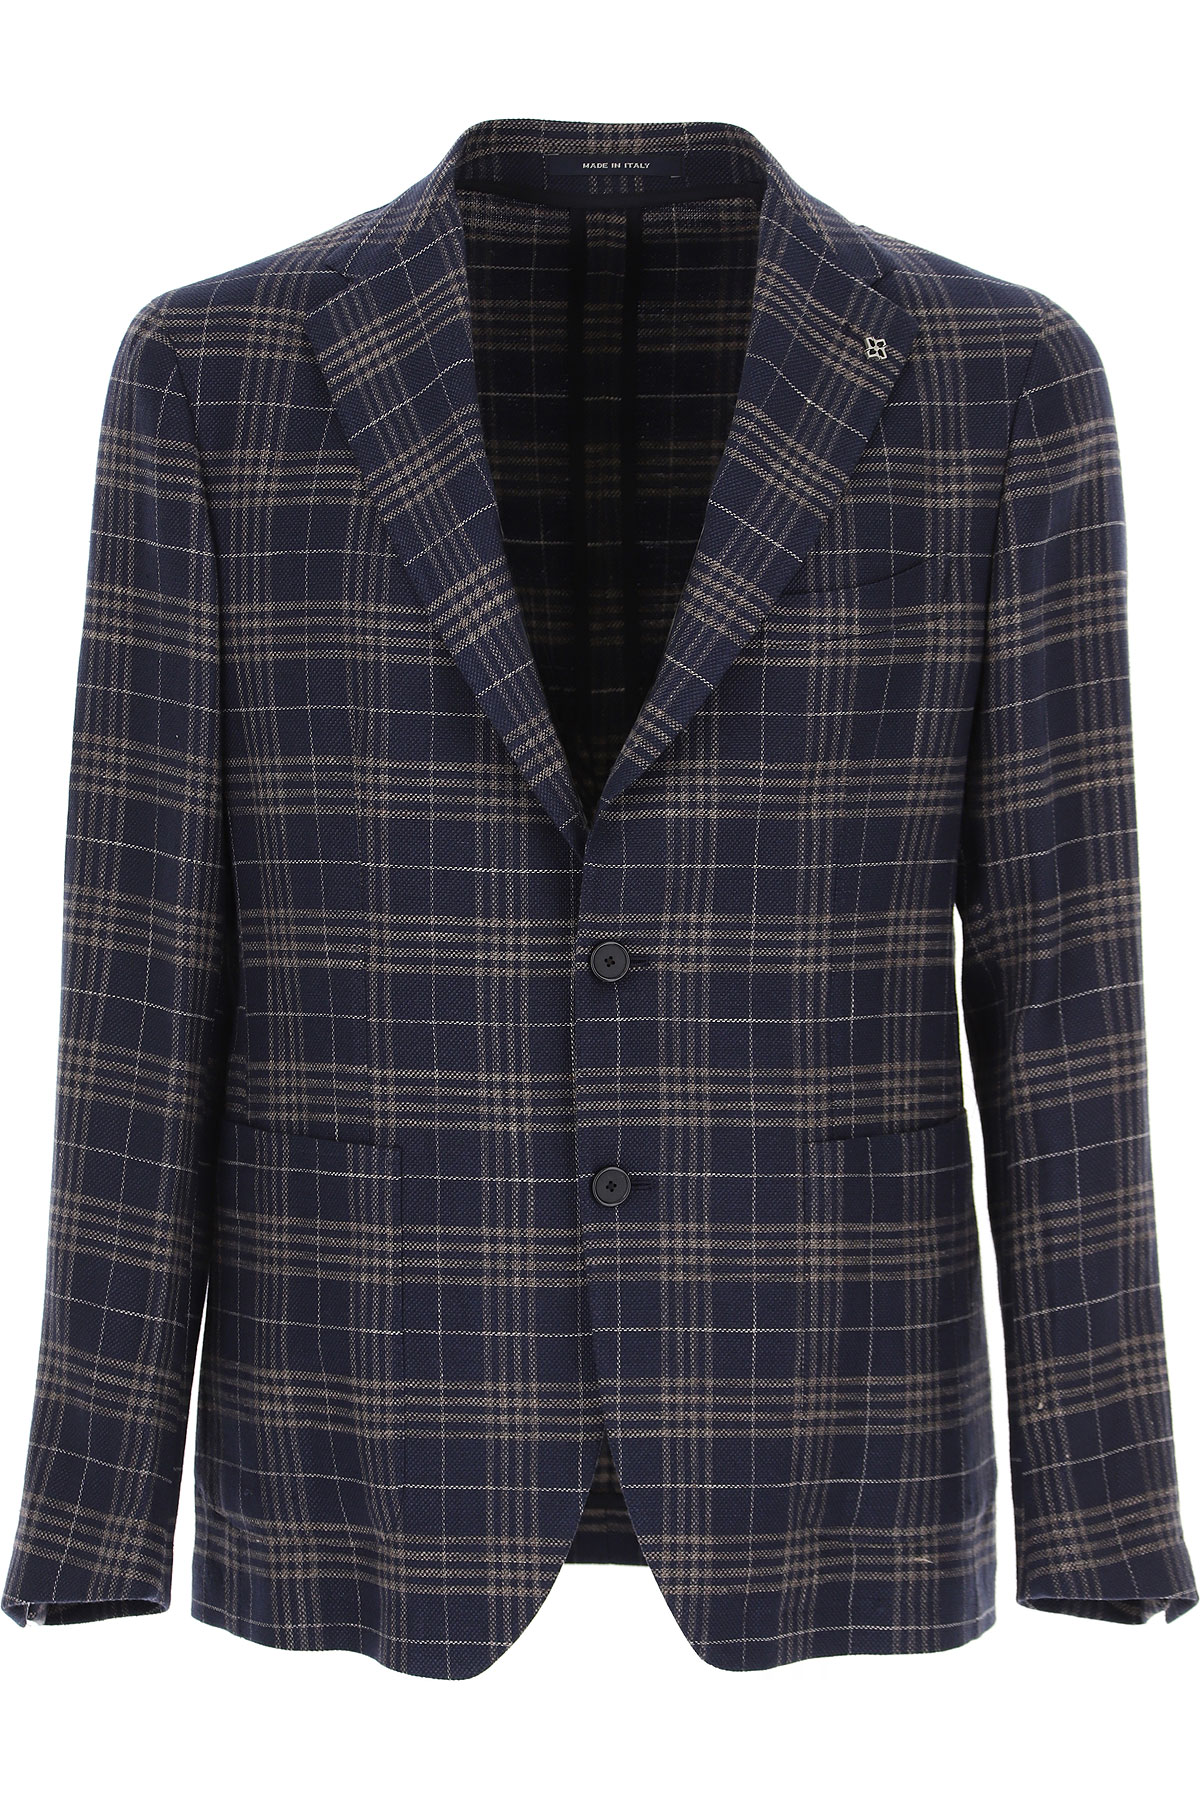 Tagliatore Blazer for Men, Sport Coat On Sale, Navy Blue, 2019, L M XL